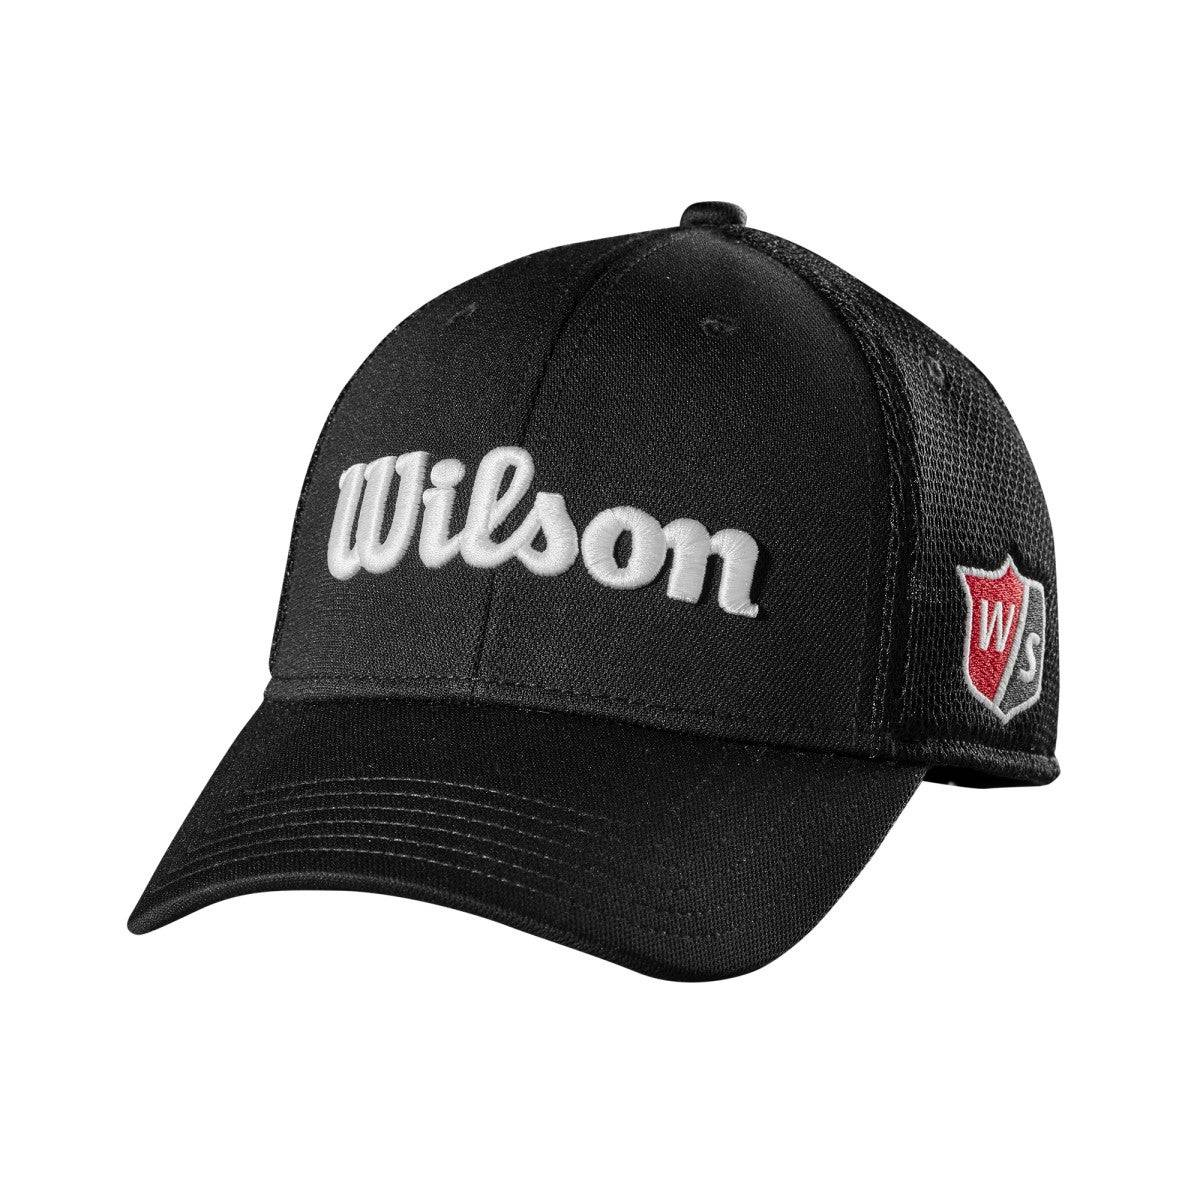 Wilson Tour Mesh Cap in Black - Size: One Size  - Unisex - Black - Size: One Size